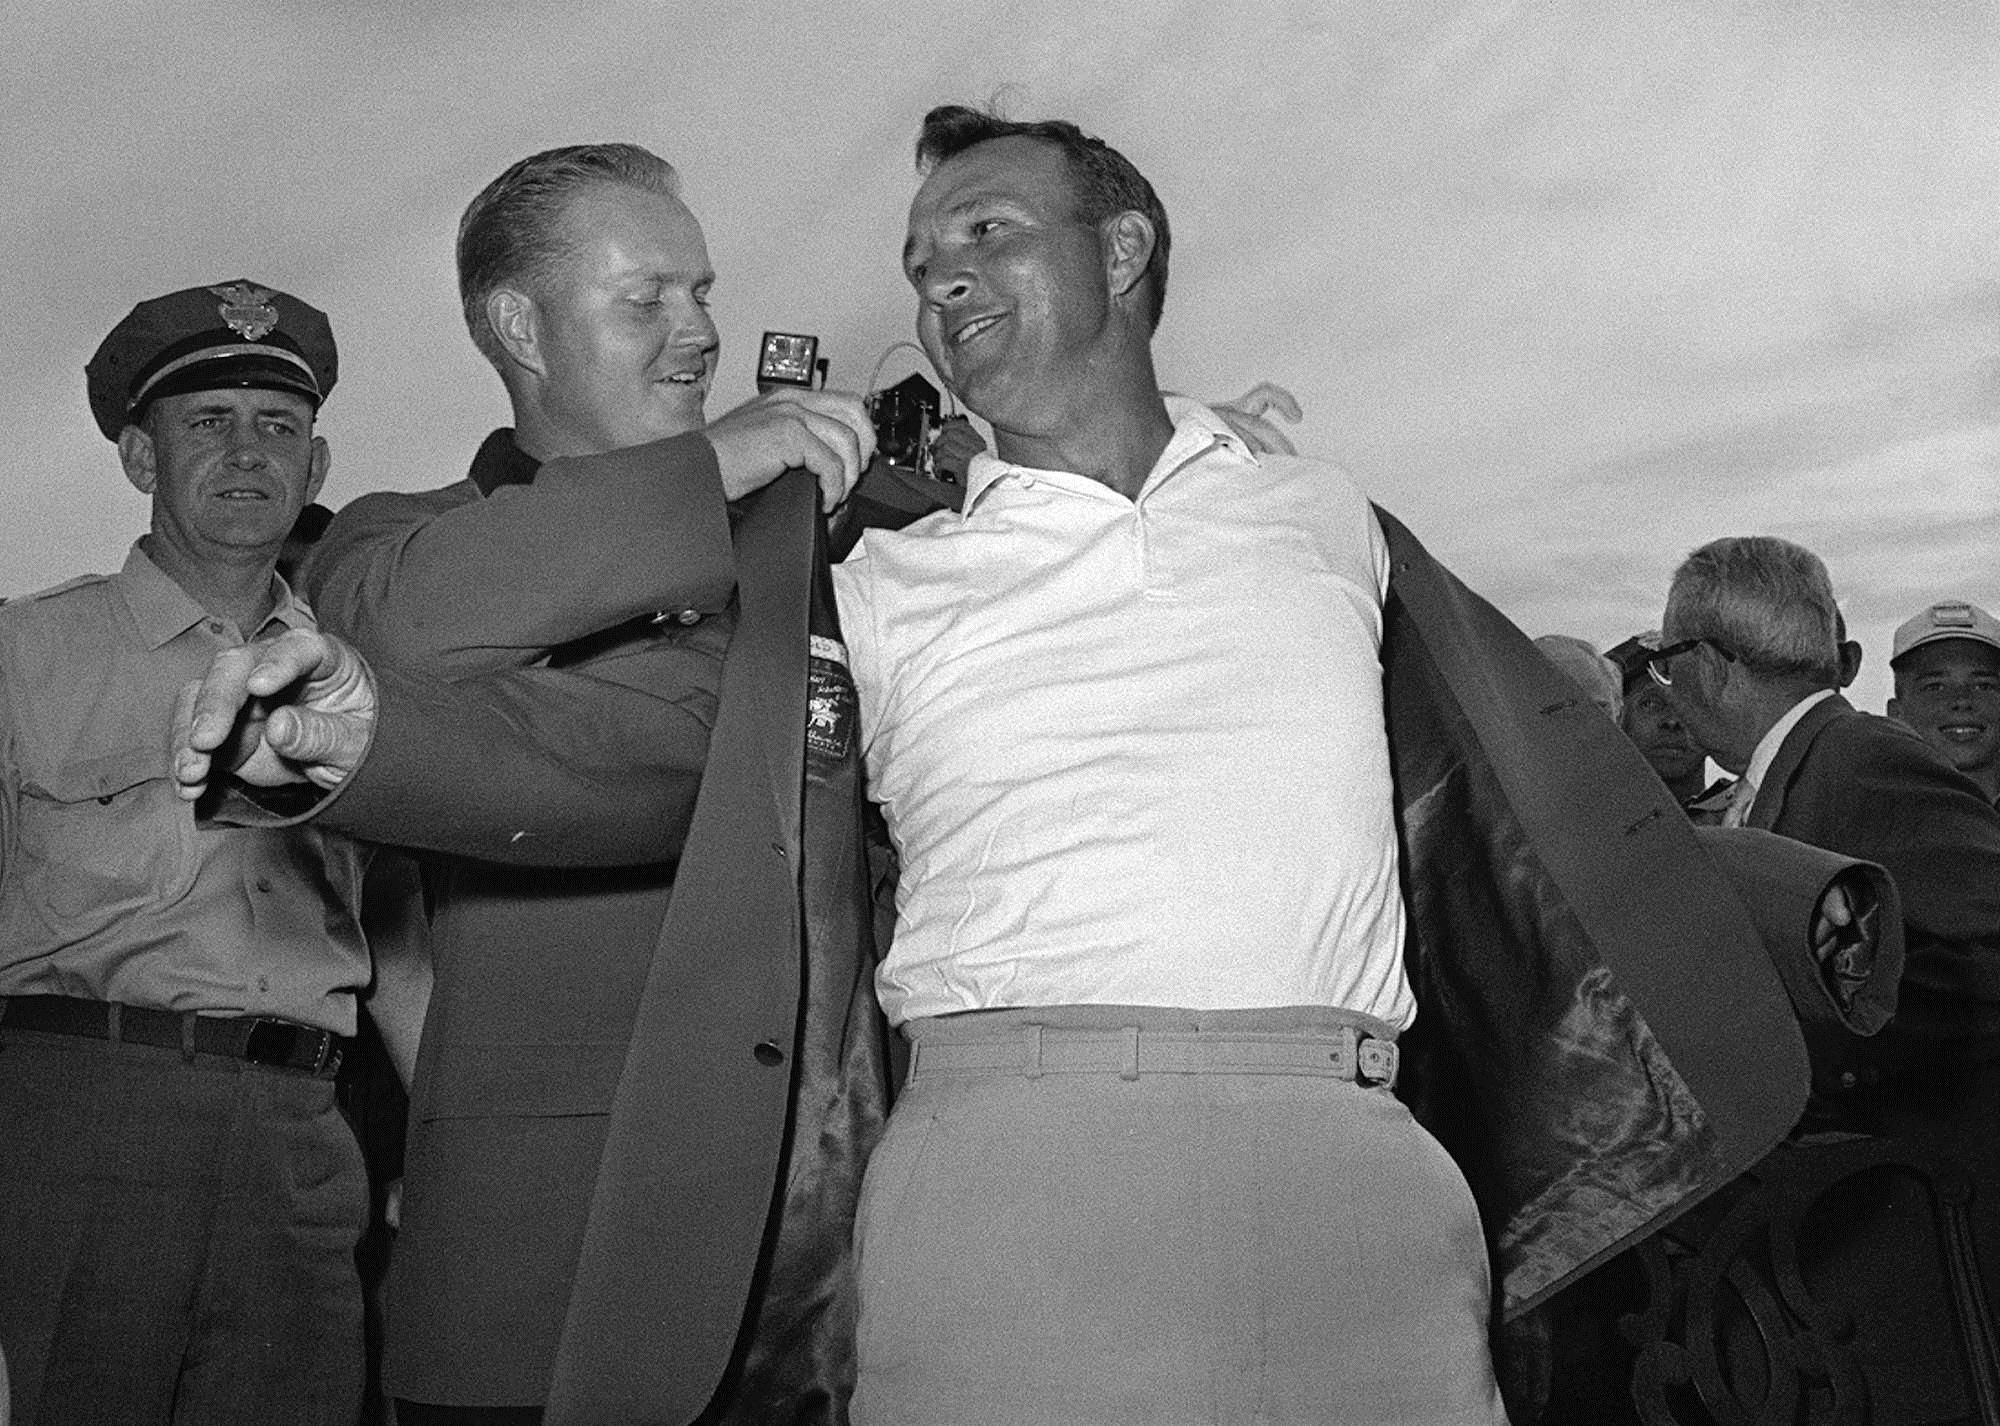 In this April 12, 1964 file photo, Arnold Palmer, slips into his green jacket with help from Jack Nicklaus after winning the Masters golf championship, in Augusta, Ga.